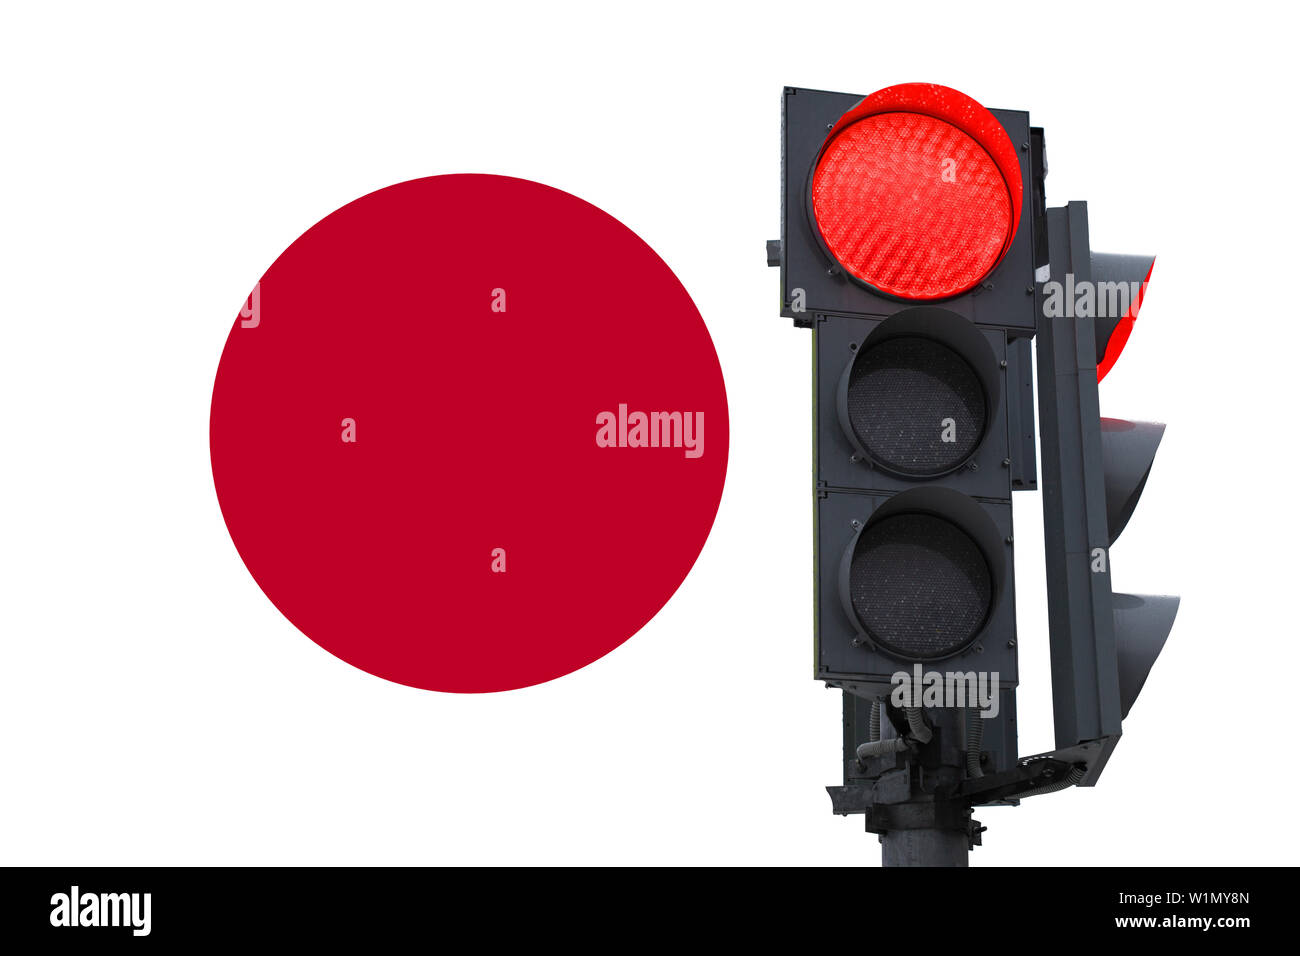 traffic light with a burning prohibitory signal. on the background of the flag of Japan. prohibition of entry - Stock Image